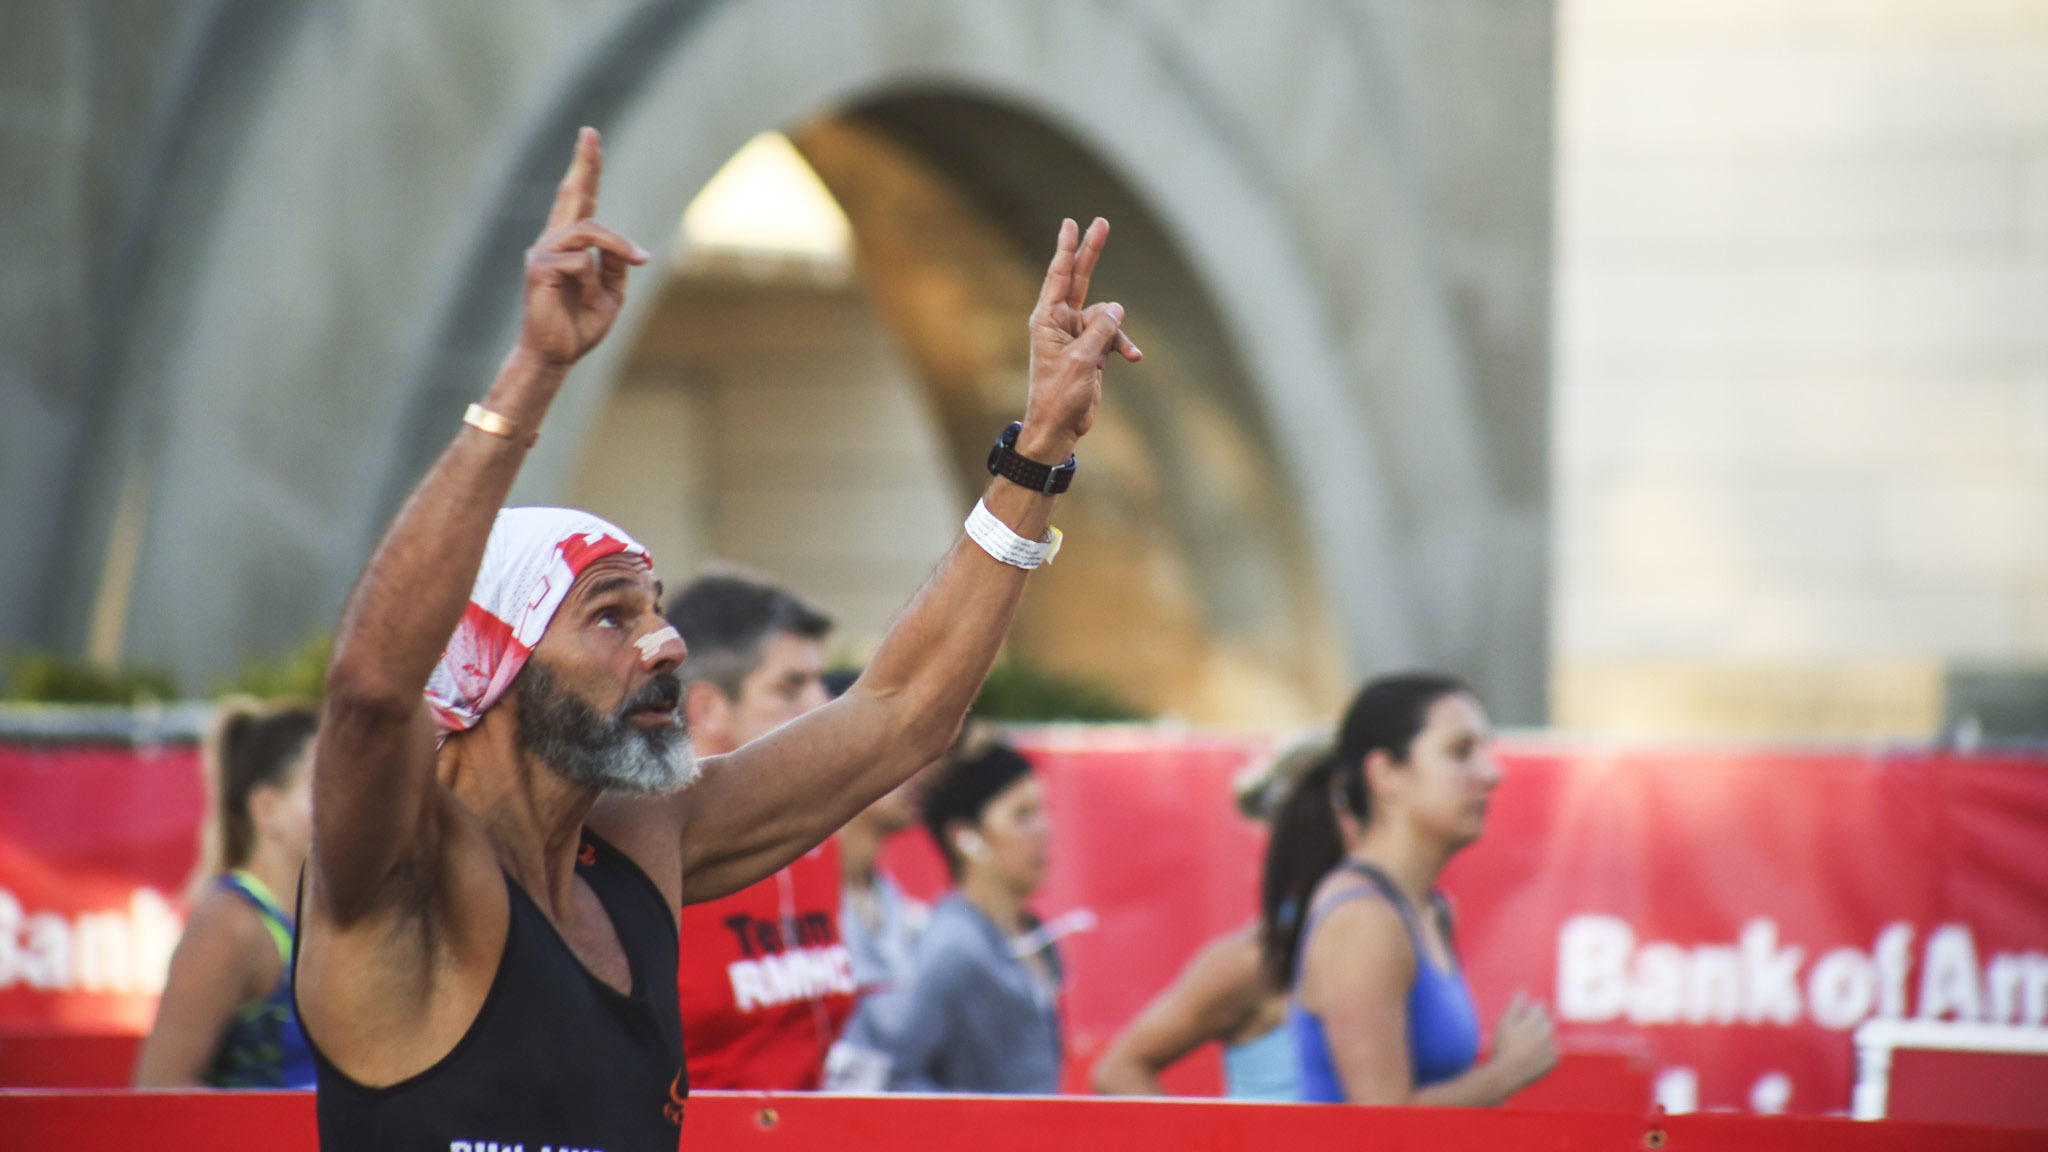 Participants started the race and crossed the finish line in Grant Park at the 2015 Chicago Marathon.